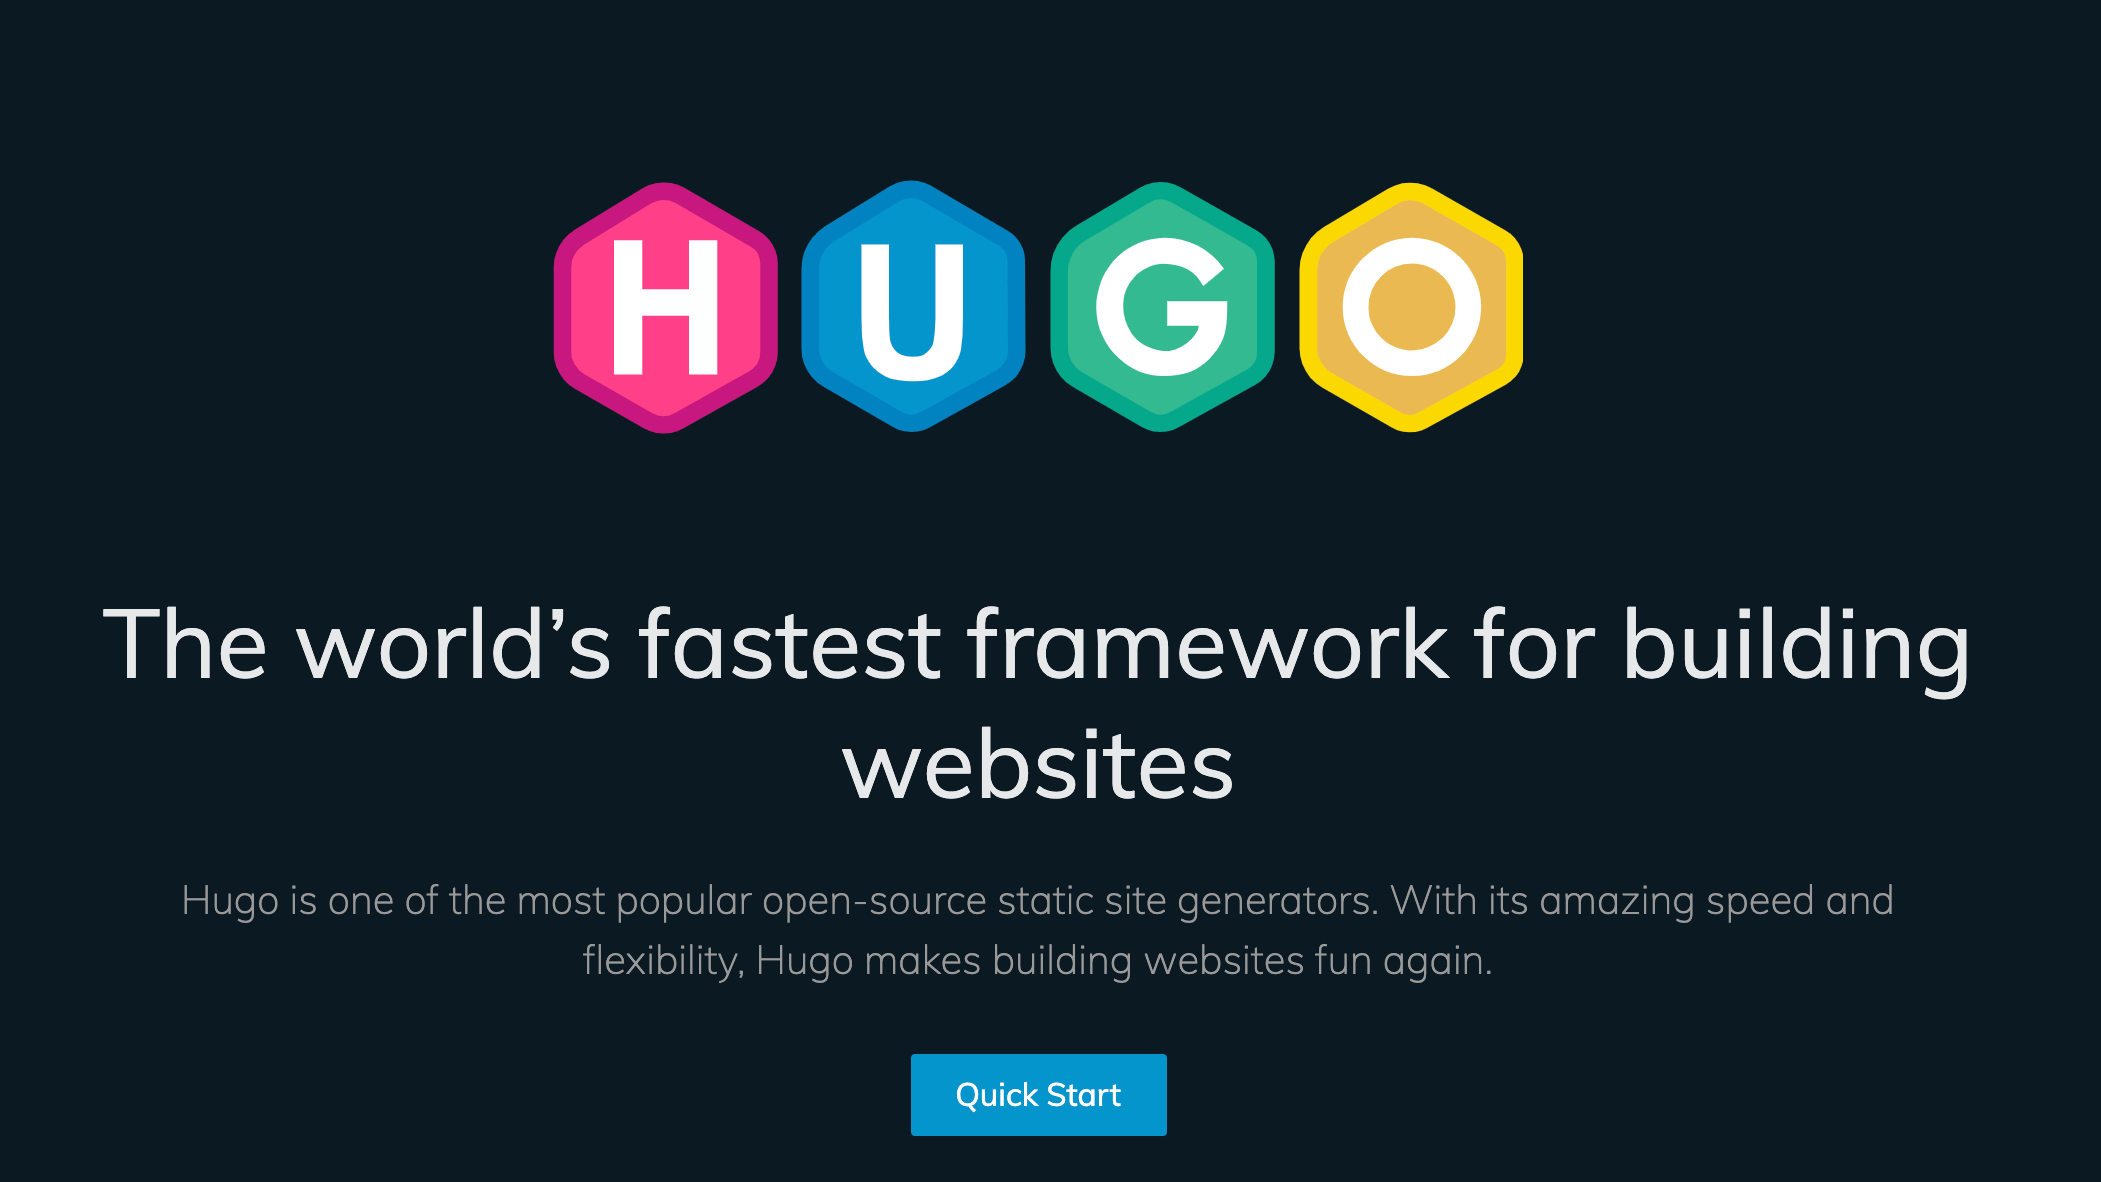 Image of the HUGO website